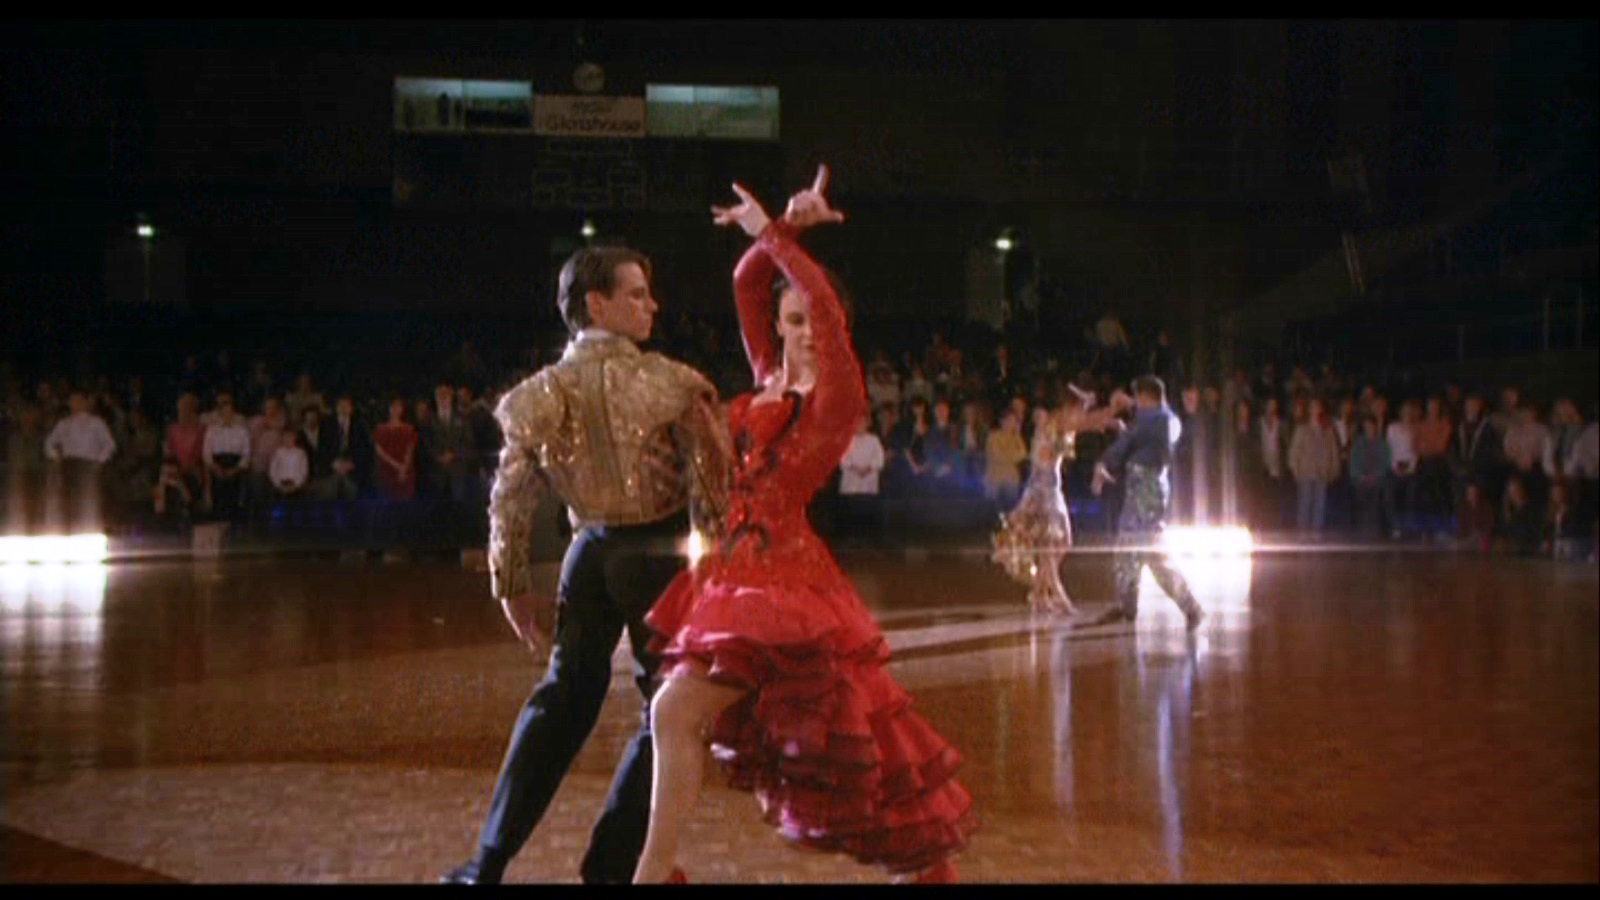 baz luhrmann images strictly ballroom hd and background  baz luhrmann images strictly ballroom hd and background photos